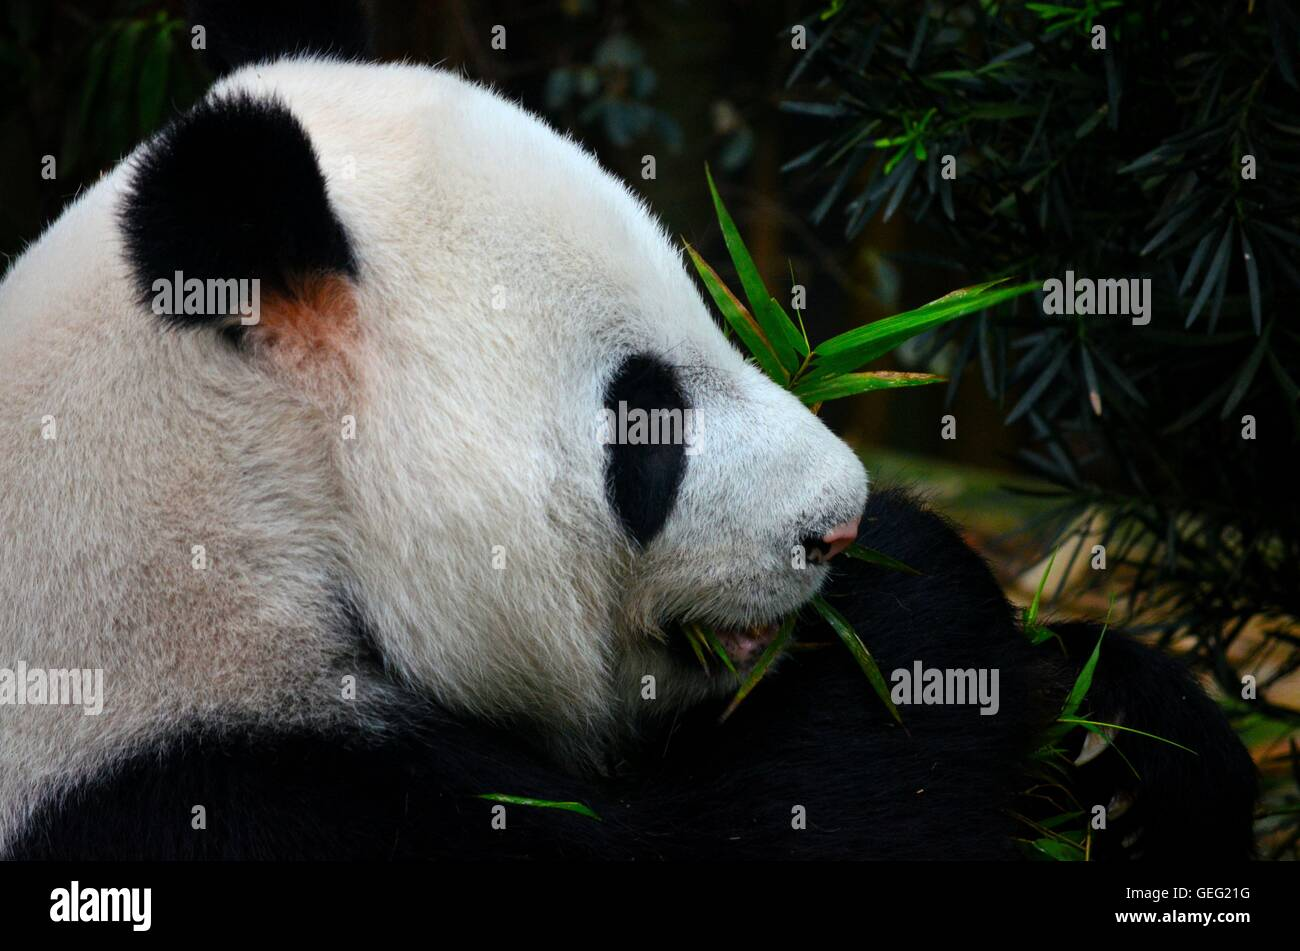 Close up of black and white Panda bear eats and chews green plants - Stock Image